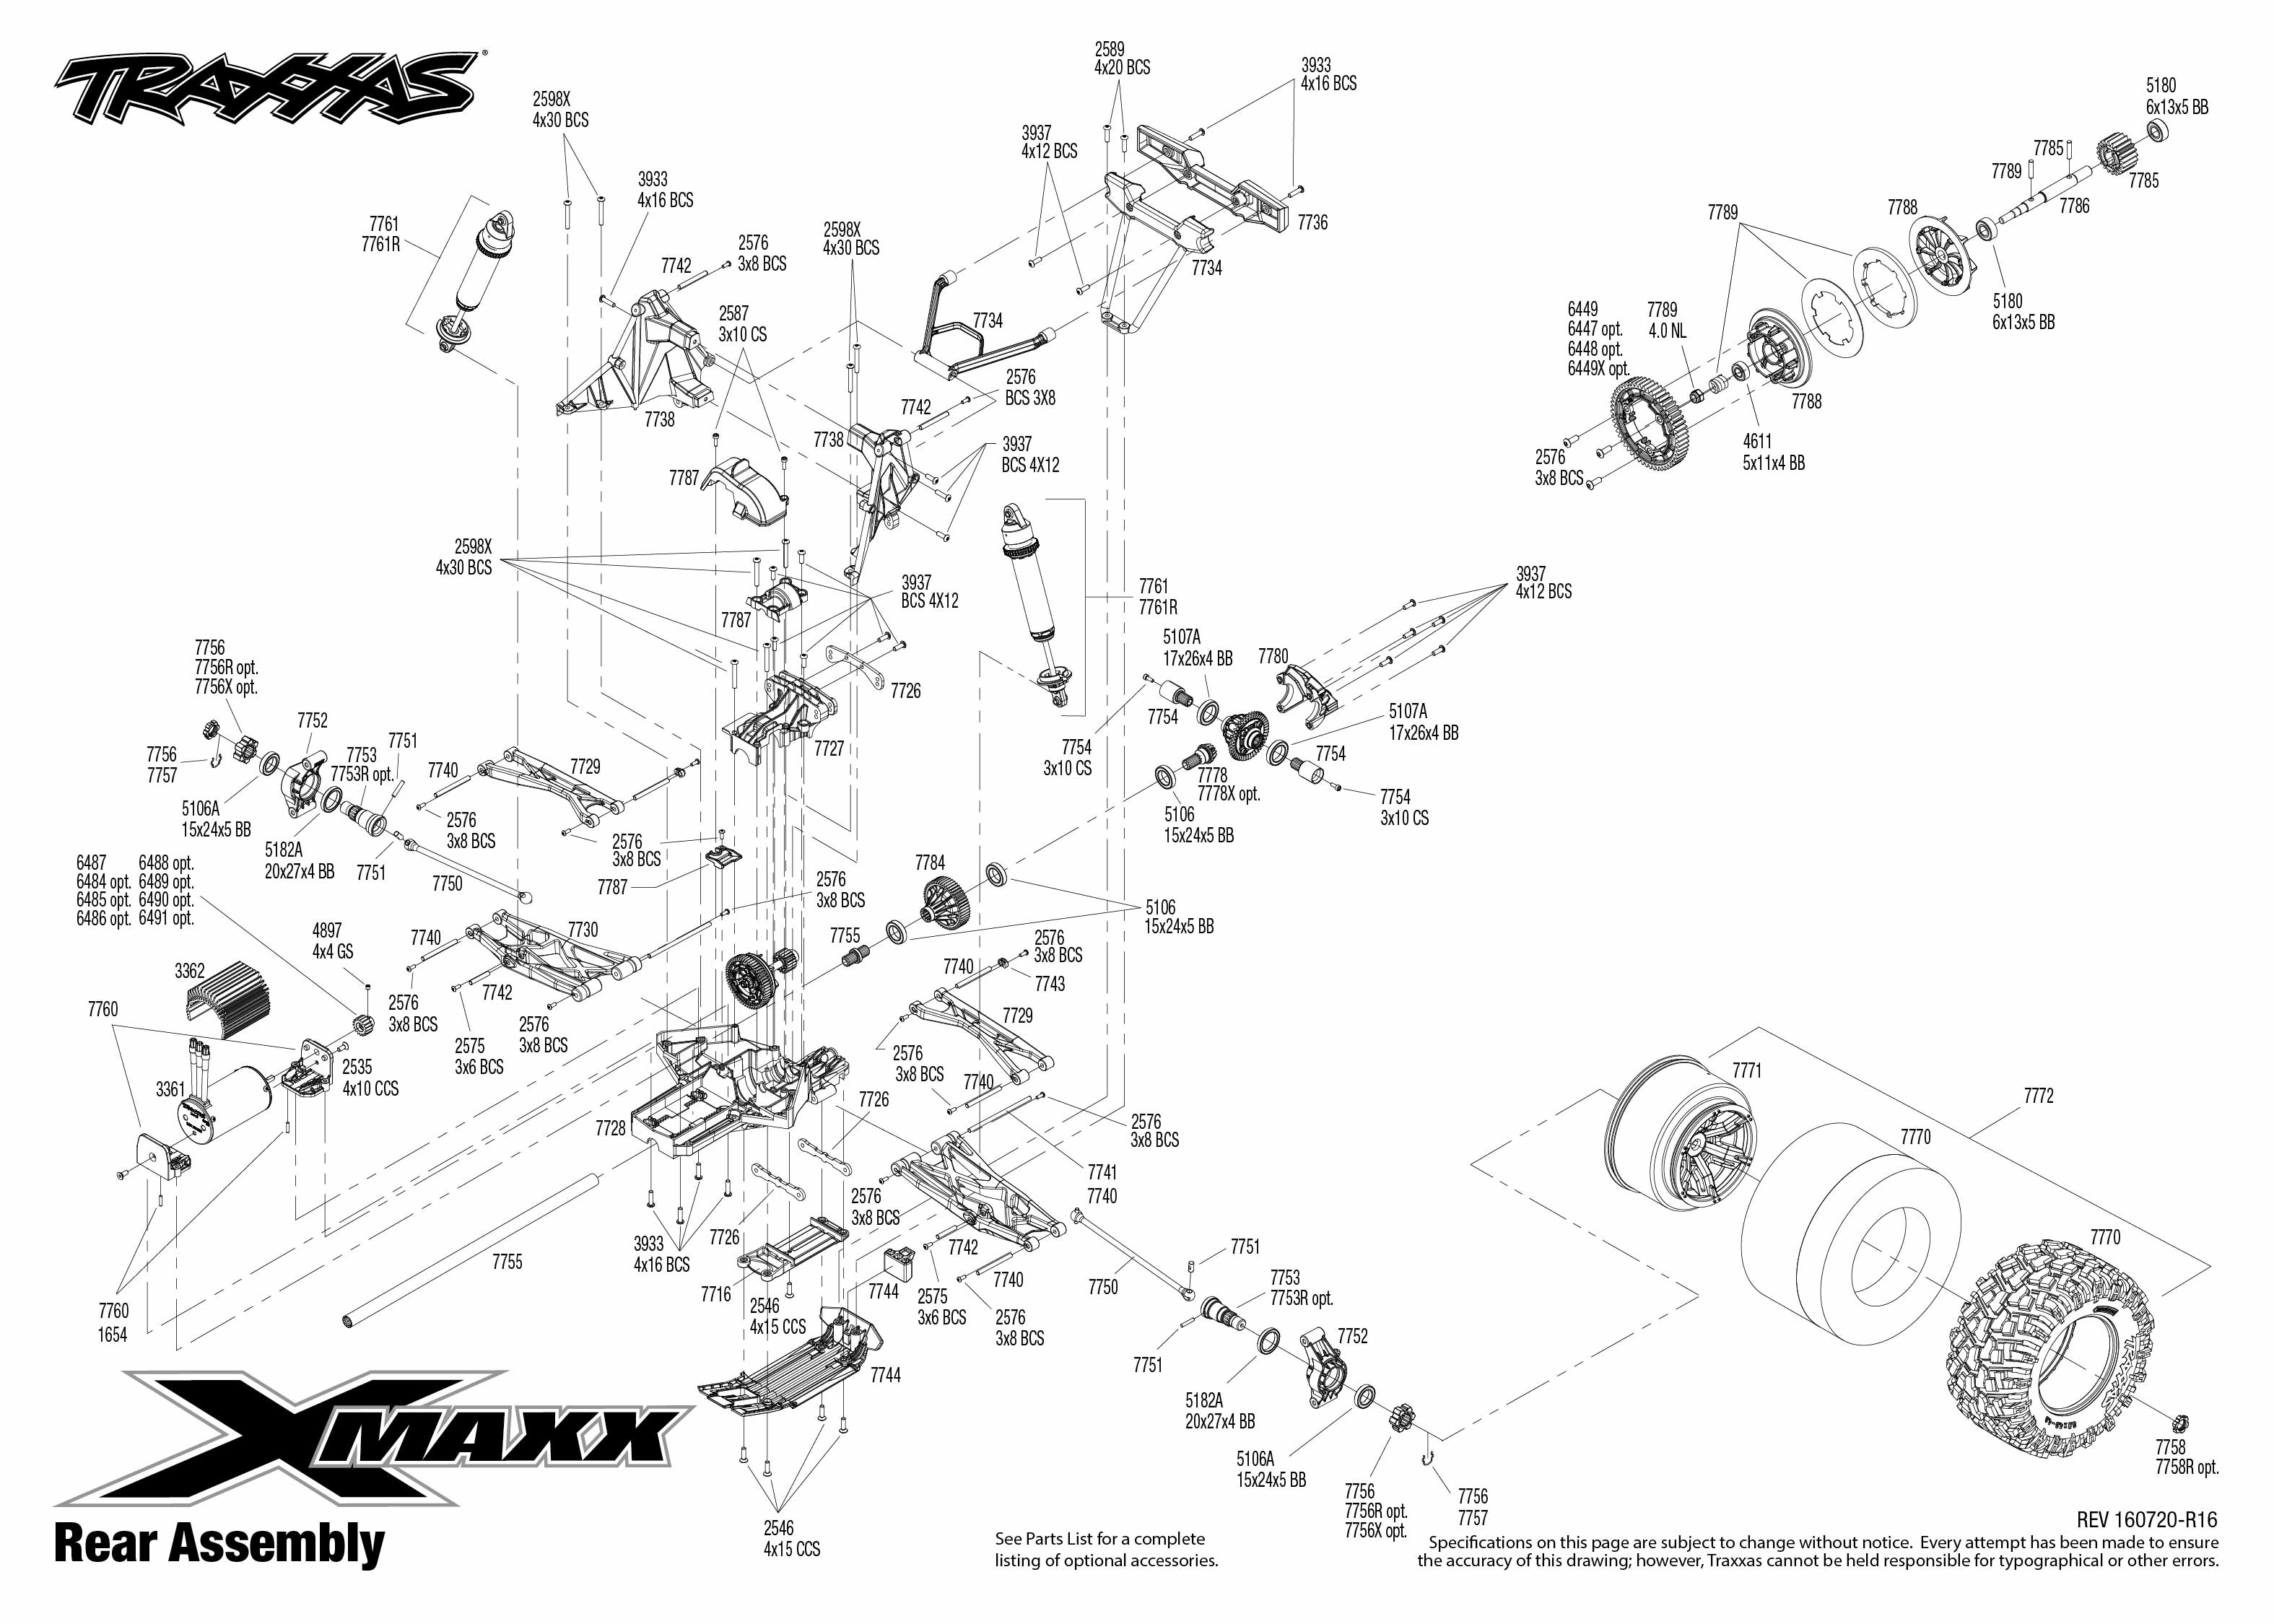 Exploded view: Traxxas X-Maxx 1:5 4WD TQi Brushless TSM